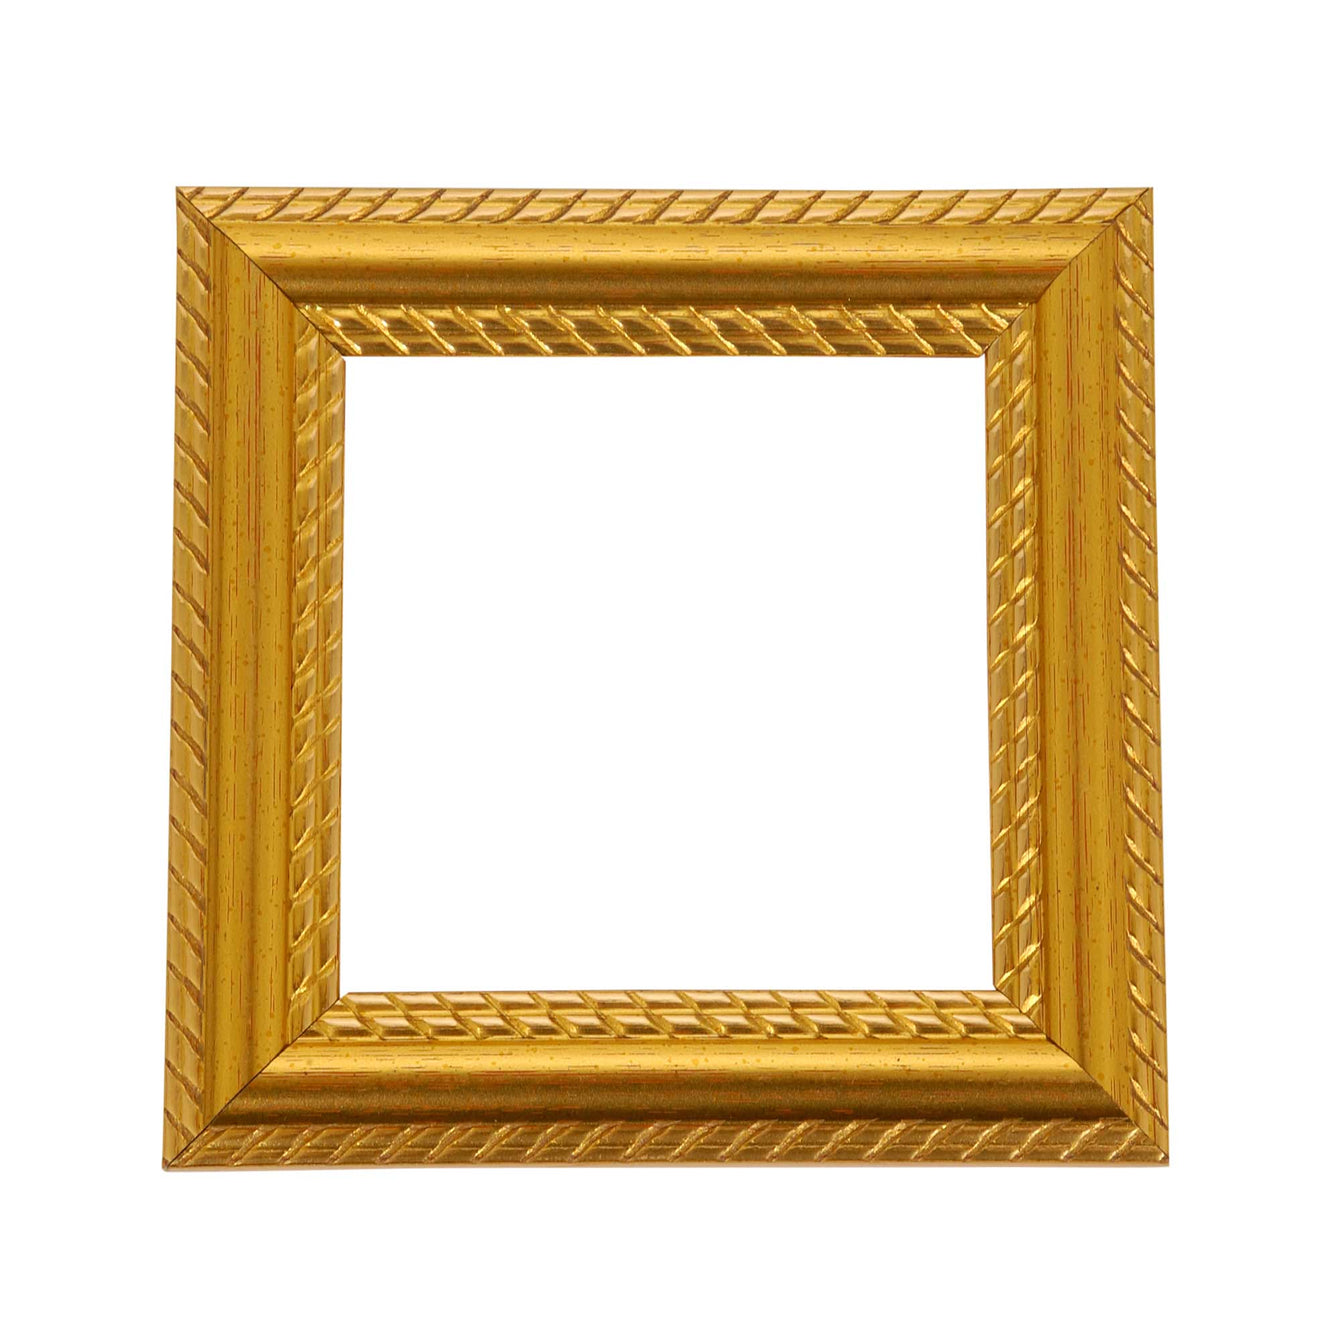 ElekTek Switch Surround Georgian Gold Rope Effect Frame Cover Finger Plate - Buy It Better Default Title